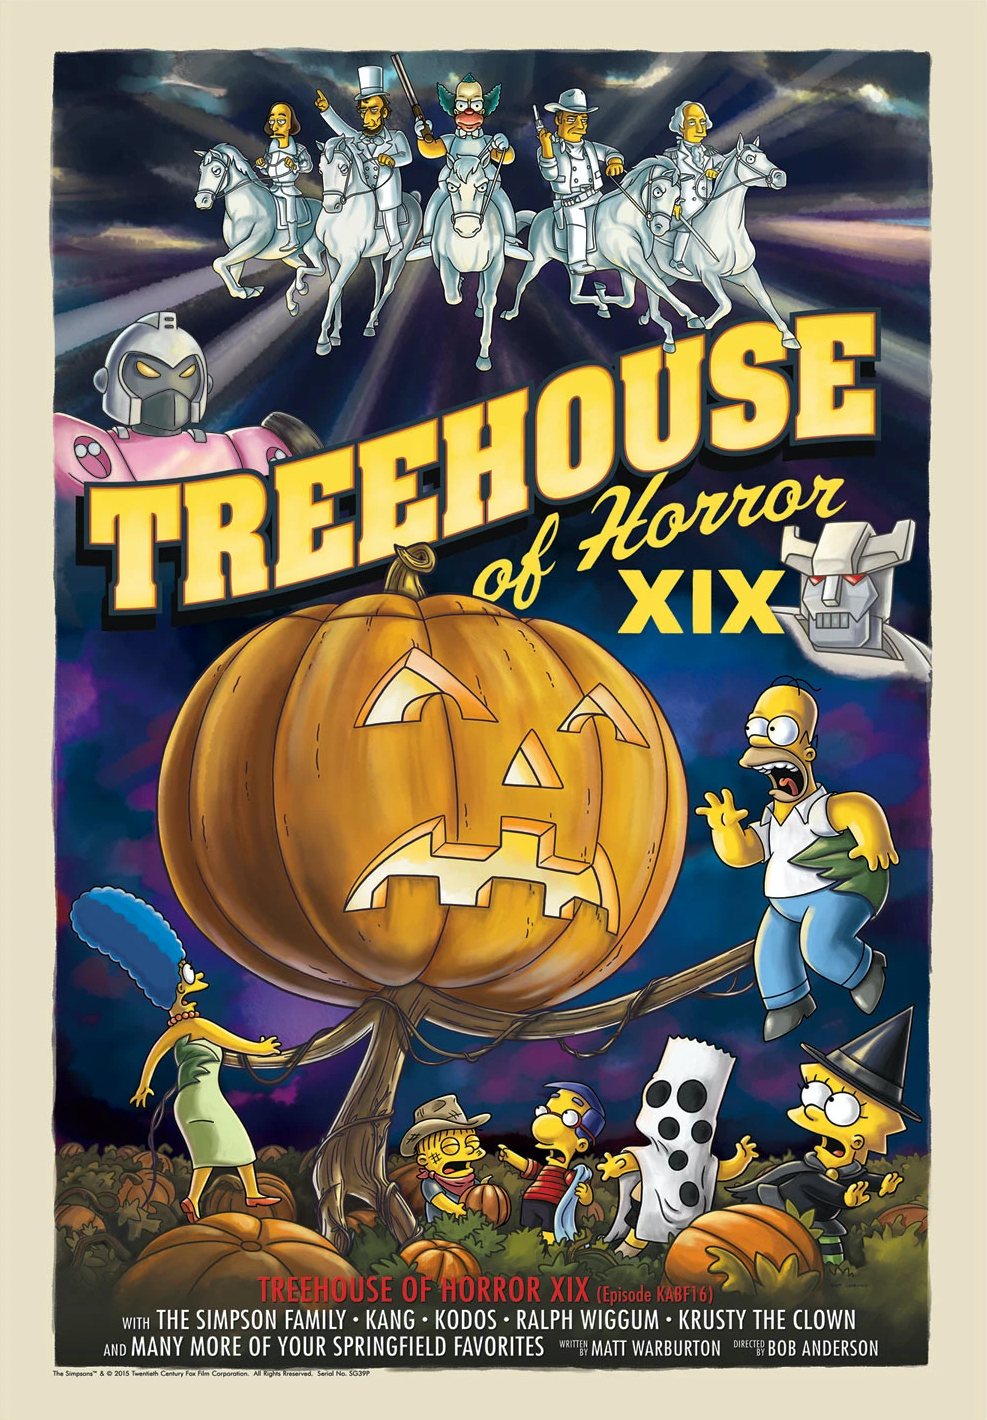 Treehouse of Horror XIX